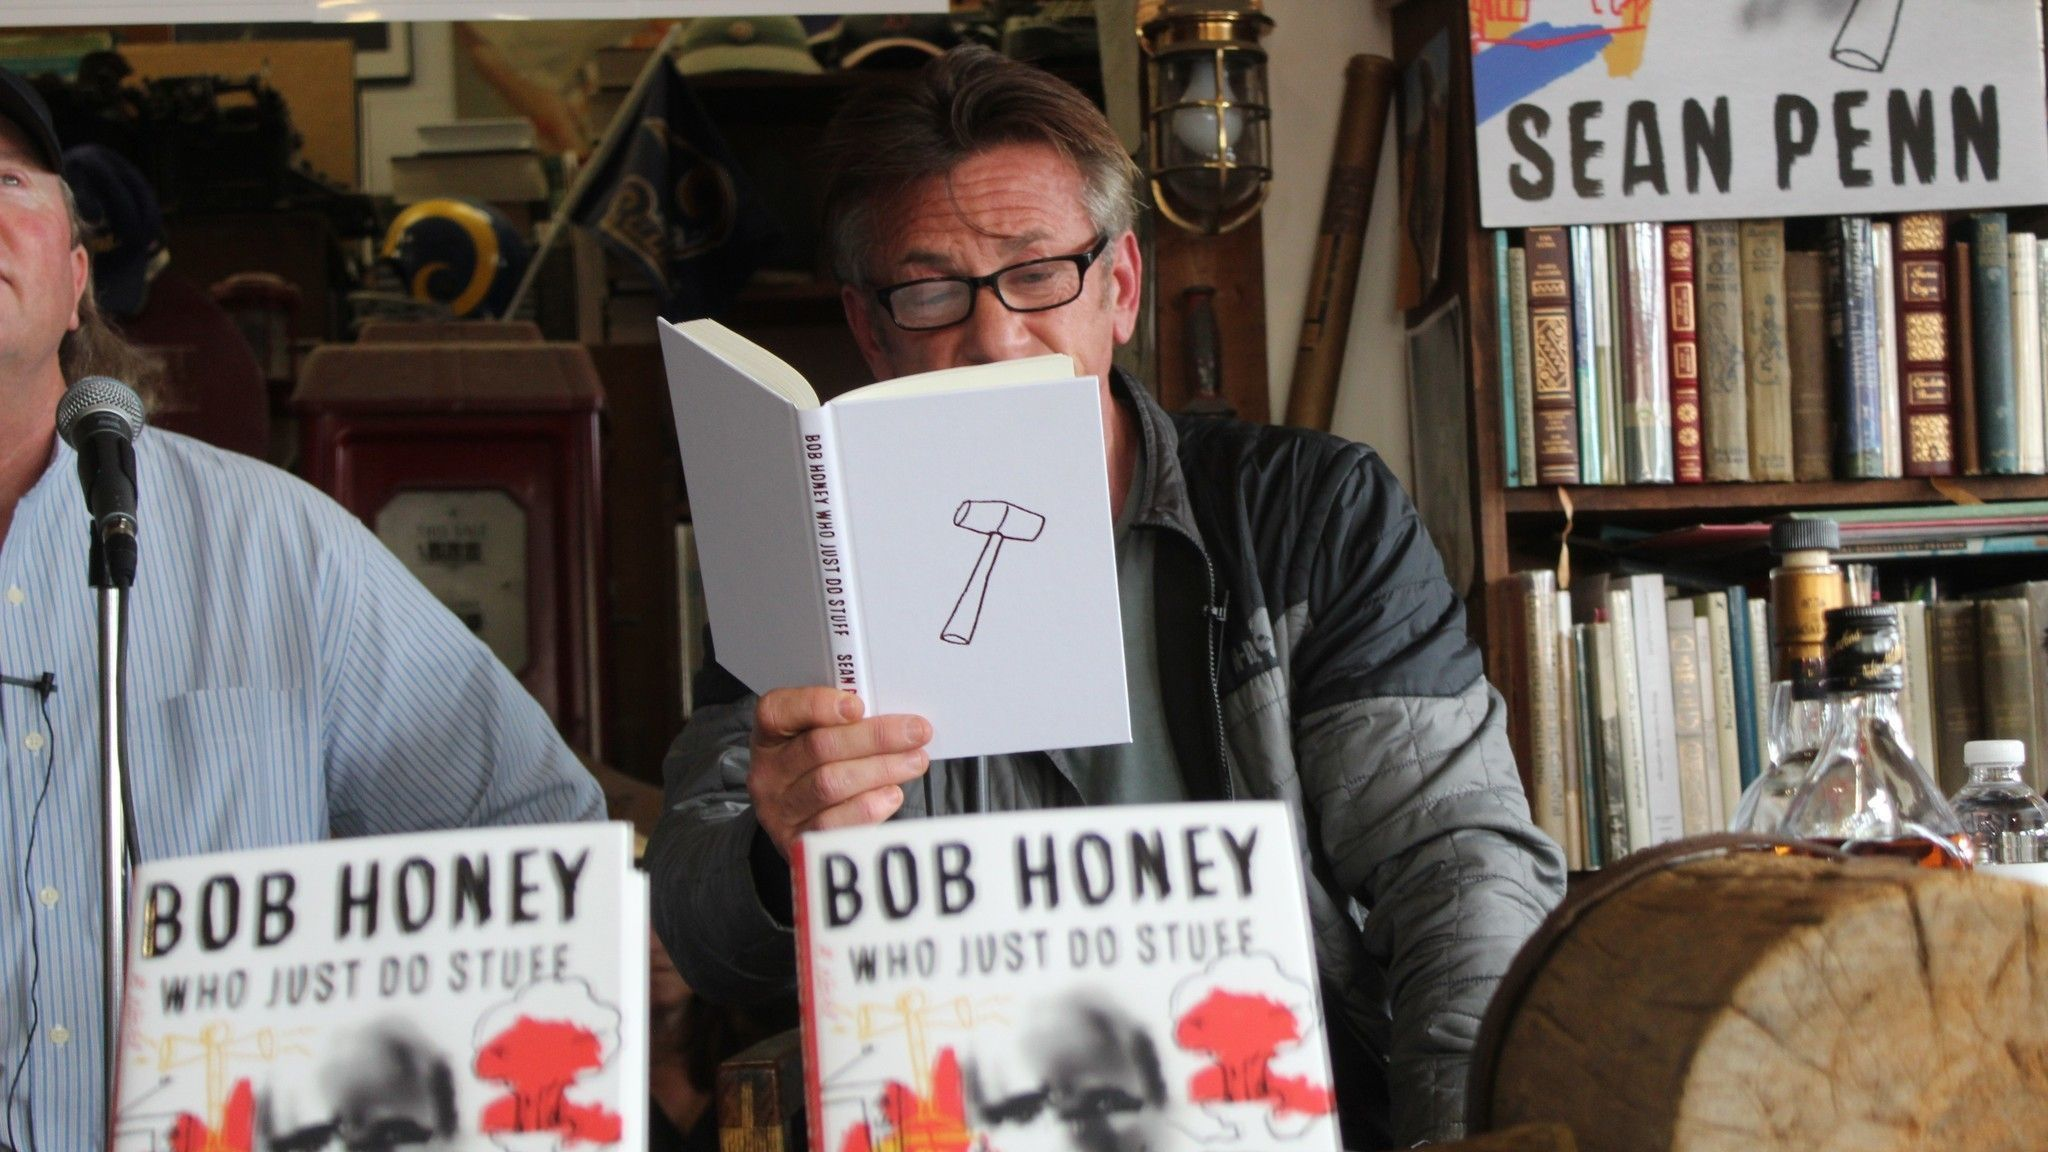 Sean Penn reads from his book 'Bob Honey Who Just Do Stuff.'